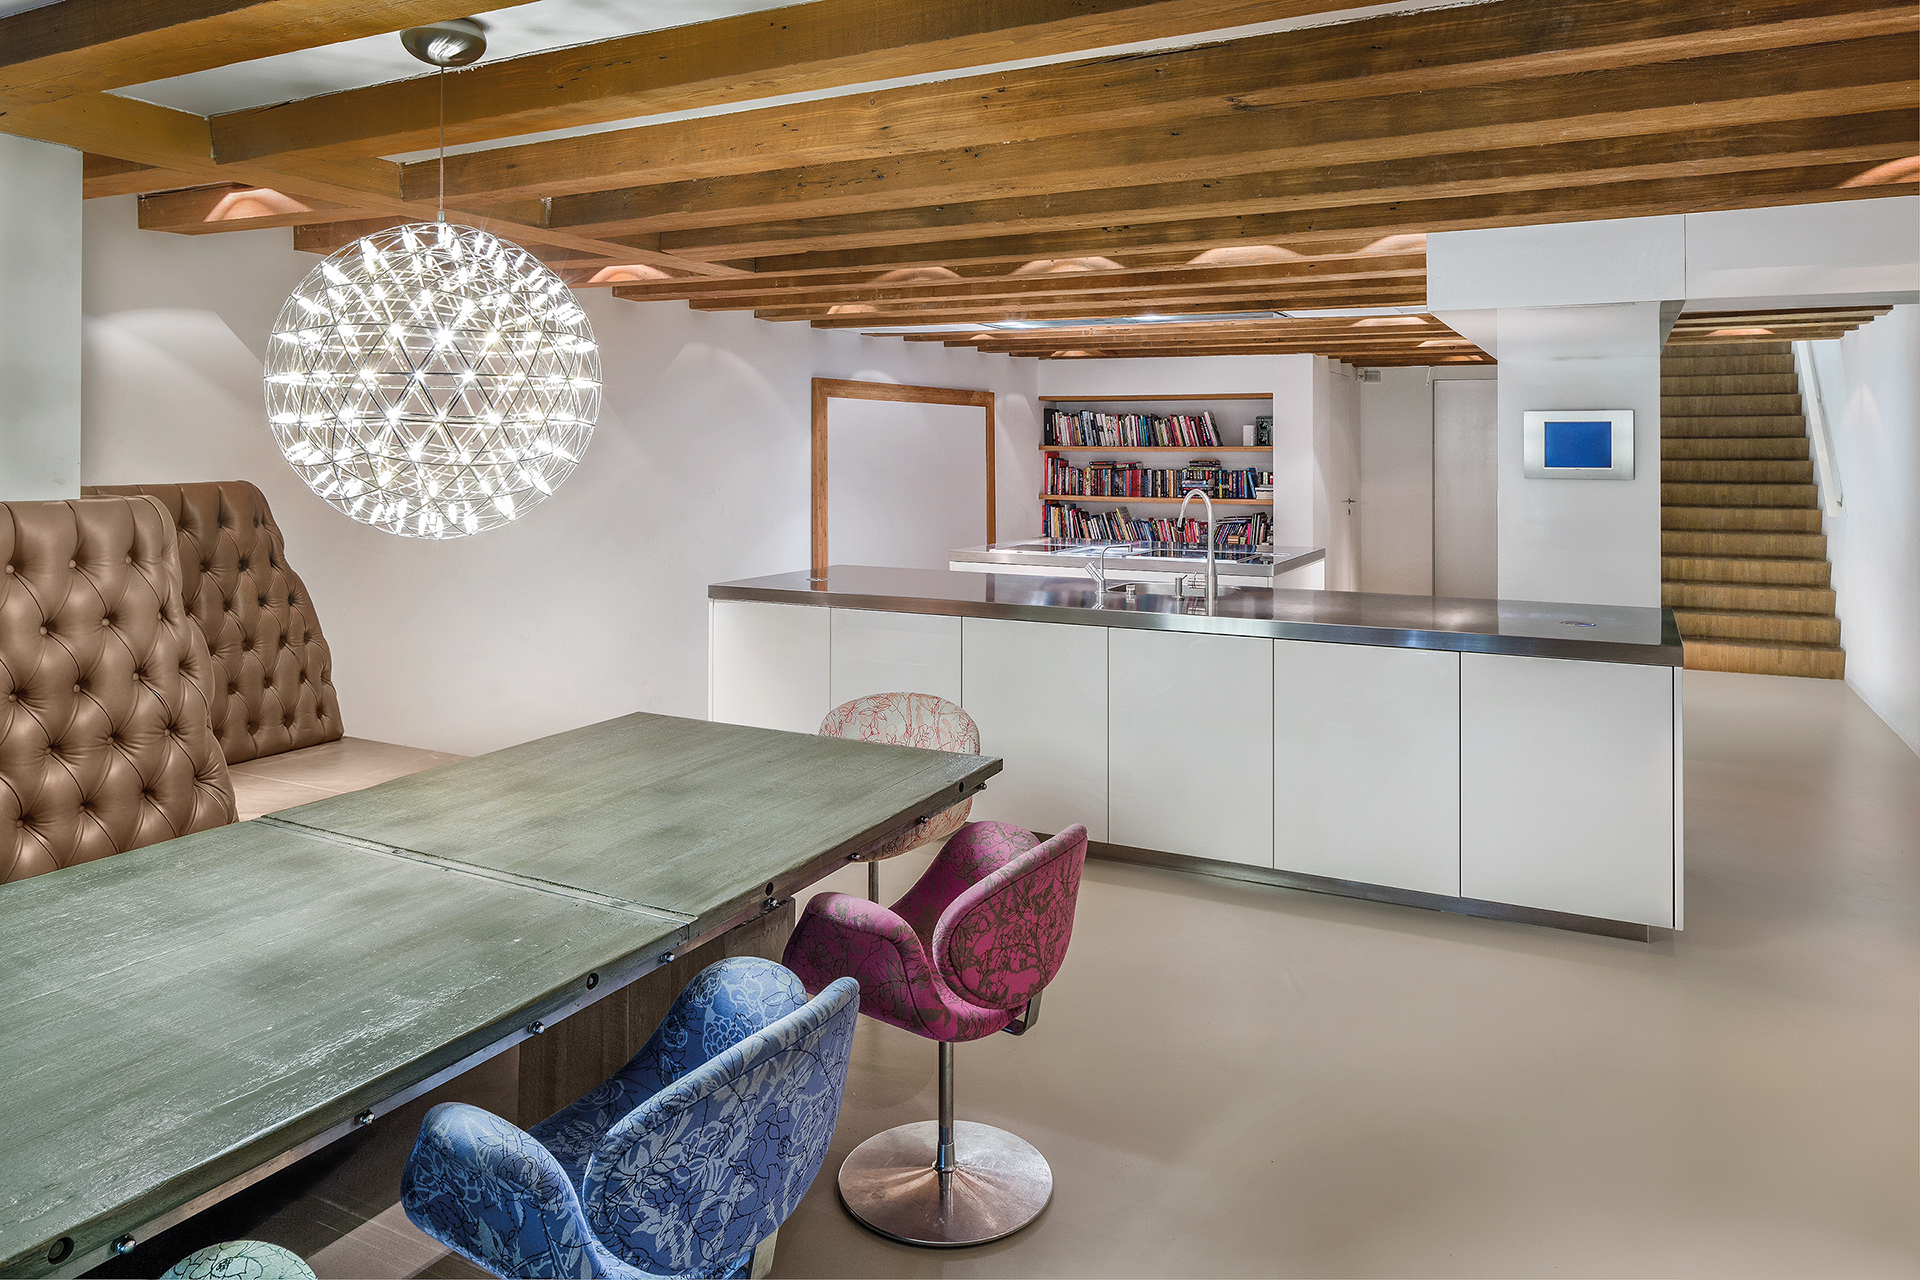 Kitchen and dining room at the groundfloor